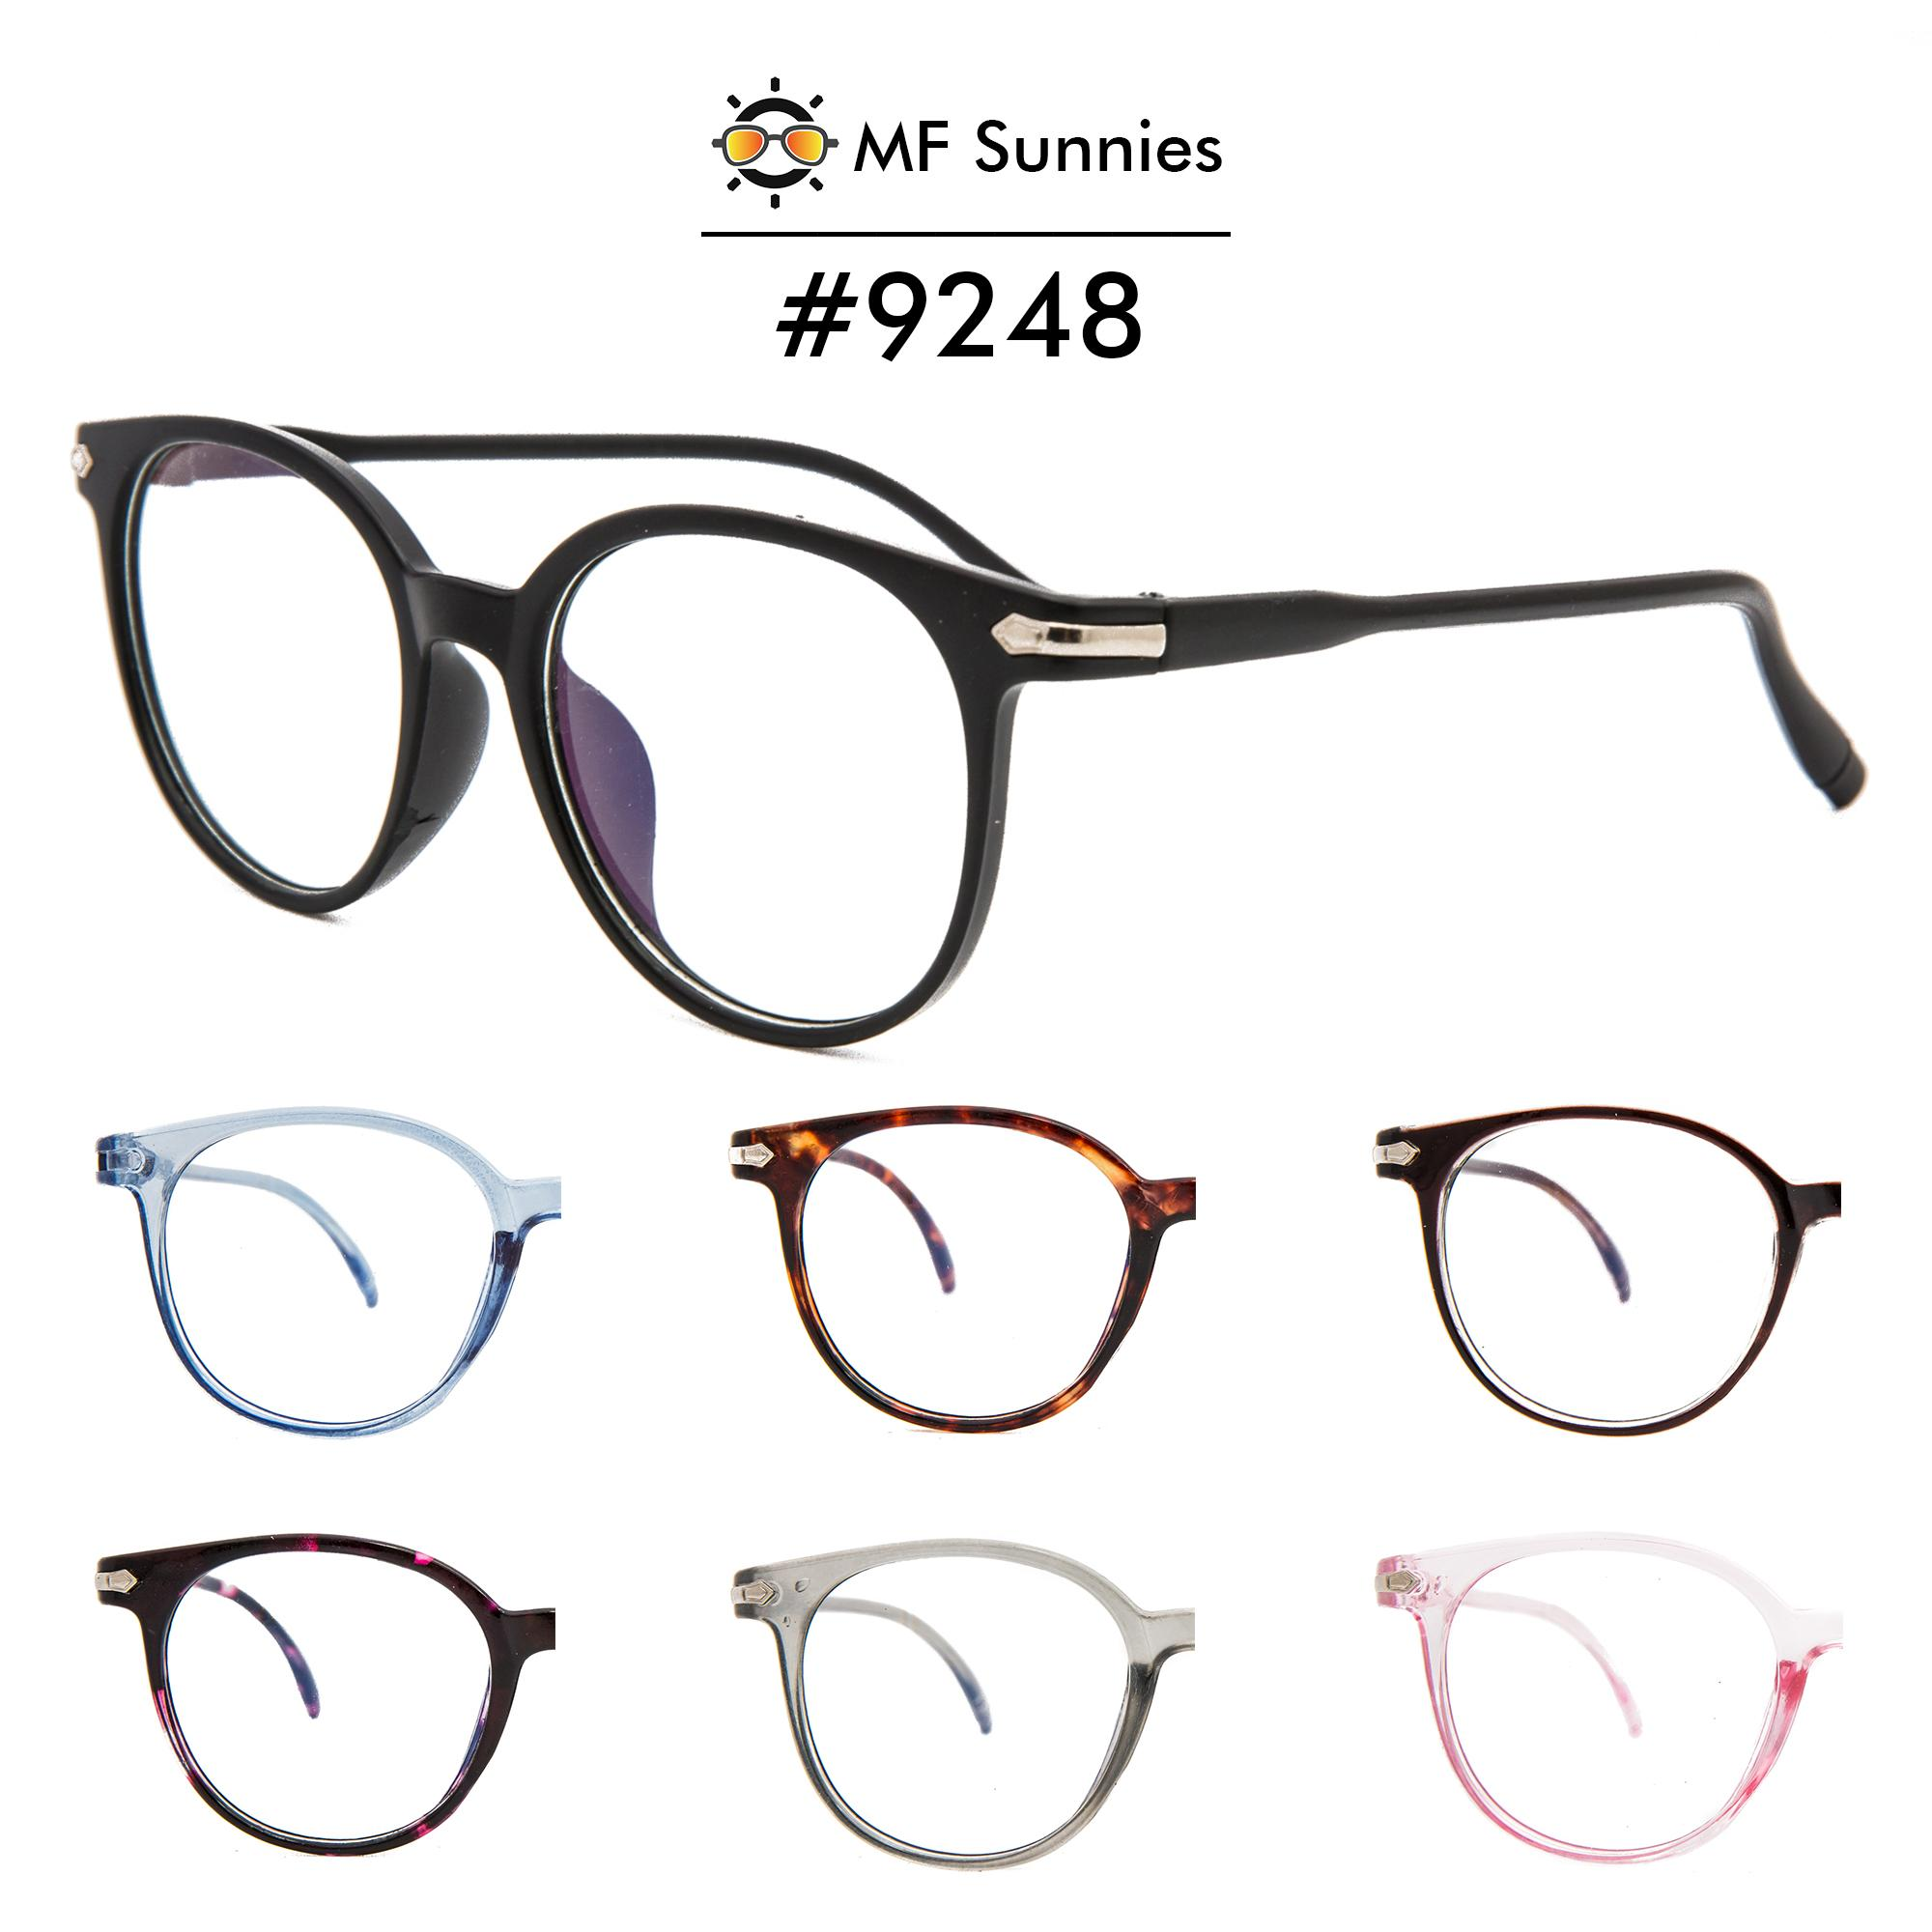 894b112690 MFSunnies Computer Anti-Radiation   Anti-Blue Light Flexible Frame Fashion  Eyewear  9248